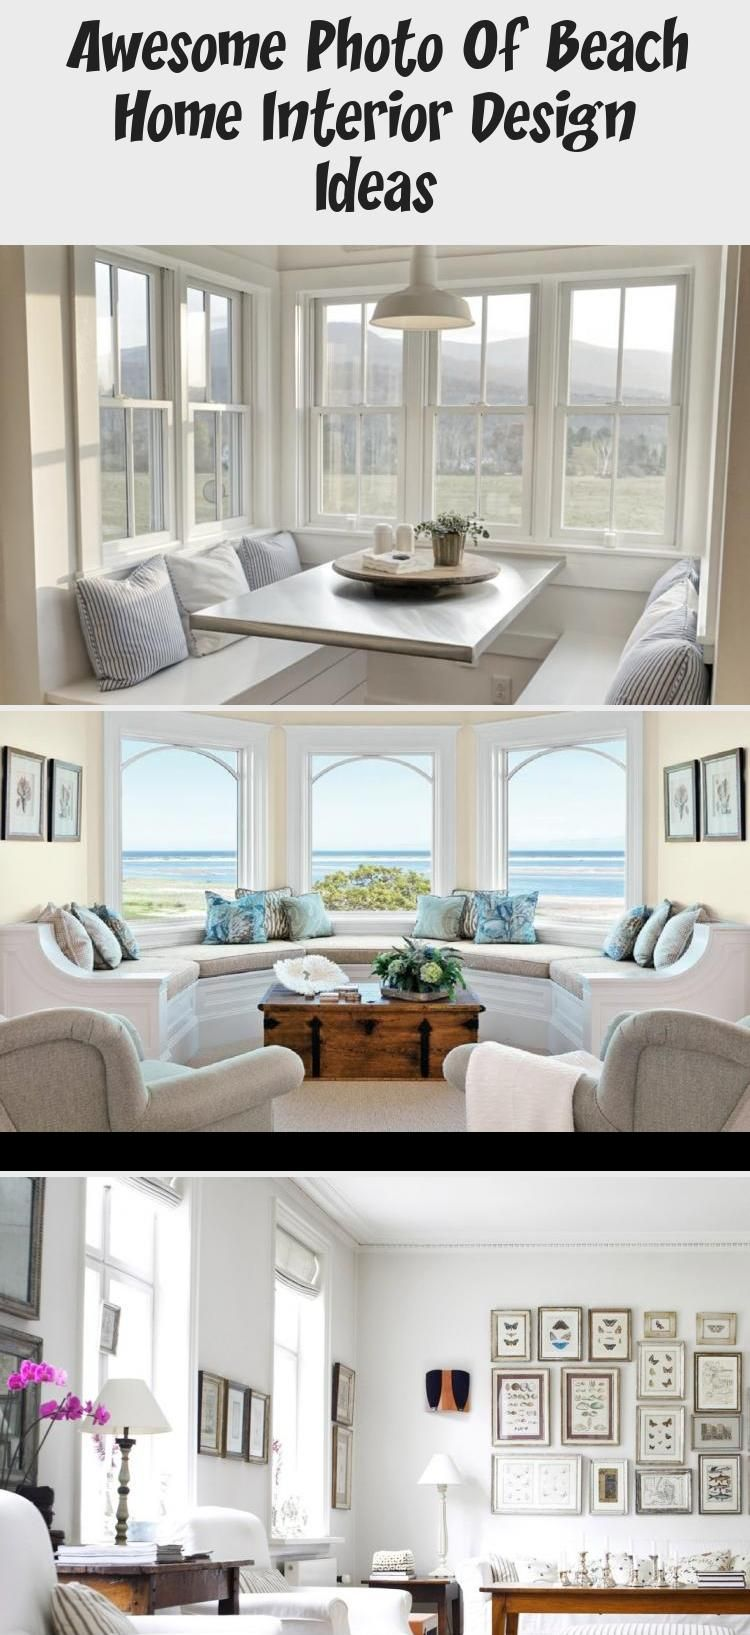 Awesome Photo of Beach Home Interior Design Ideas. No matter what kind of dwelling you decide to call home, you can produce an inspired, beach house haven by incorporating color, wooden accessories, fr...,  #beachhomeinteriordesignideas #beachhousesinteriordesignideas, #InteriorDesignLuxury #InteriorDesignIdeen #BohoInteriorDesign #VintageInteriorDesign #InteriorDesignClassic